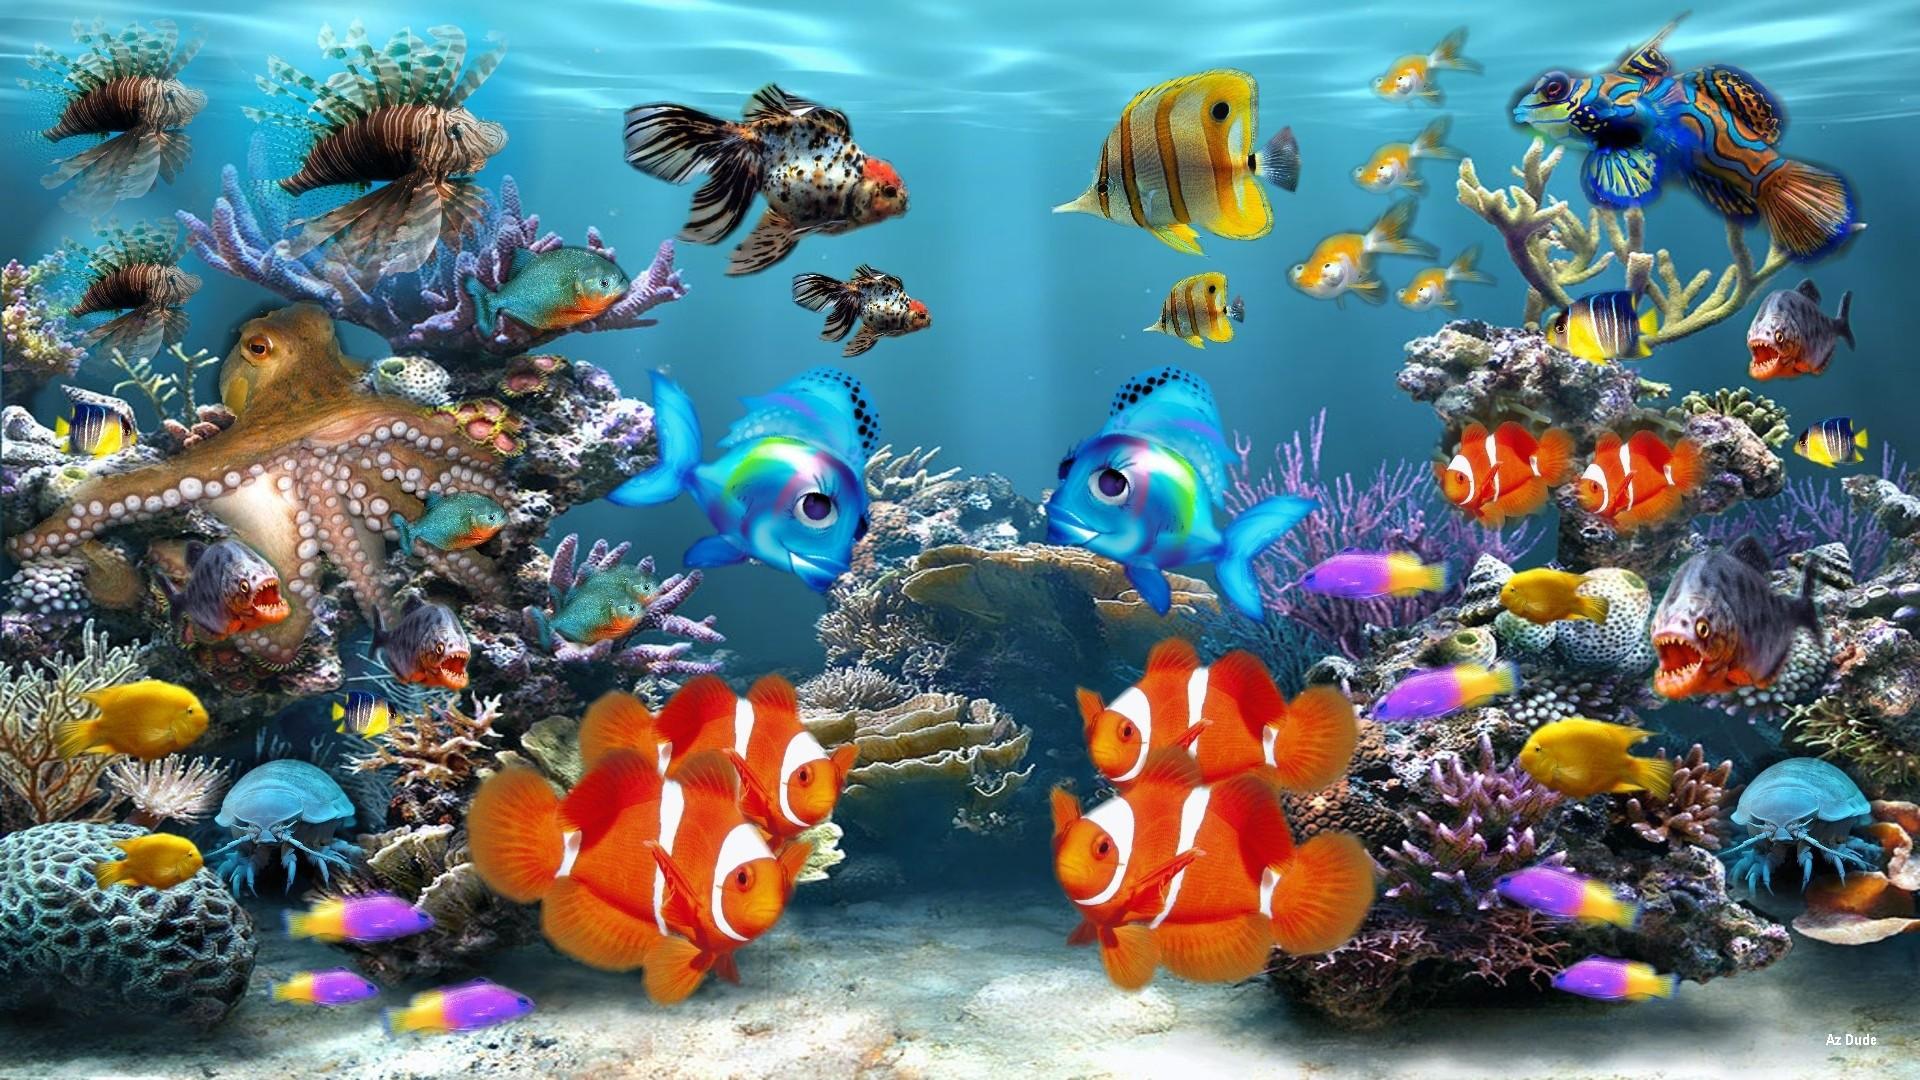 1920x1080 Moving Fish Wallpaper Awesome Fishes Life Underwater Aquarium Moving Fish Background for Hd 16. Download